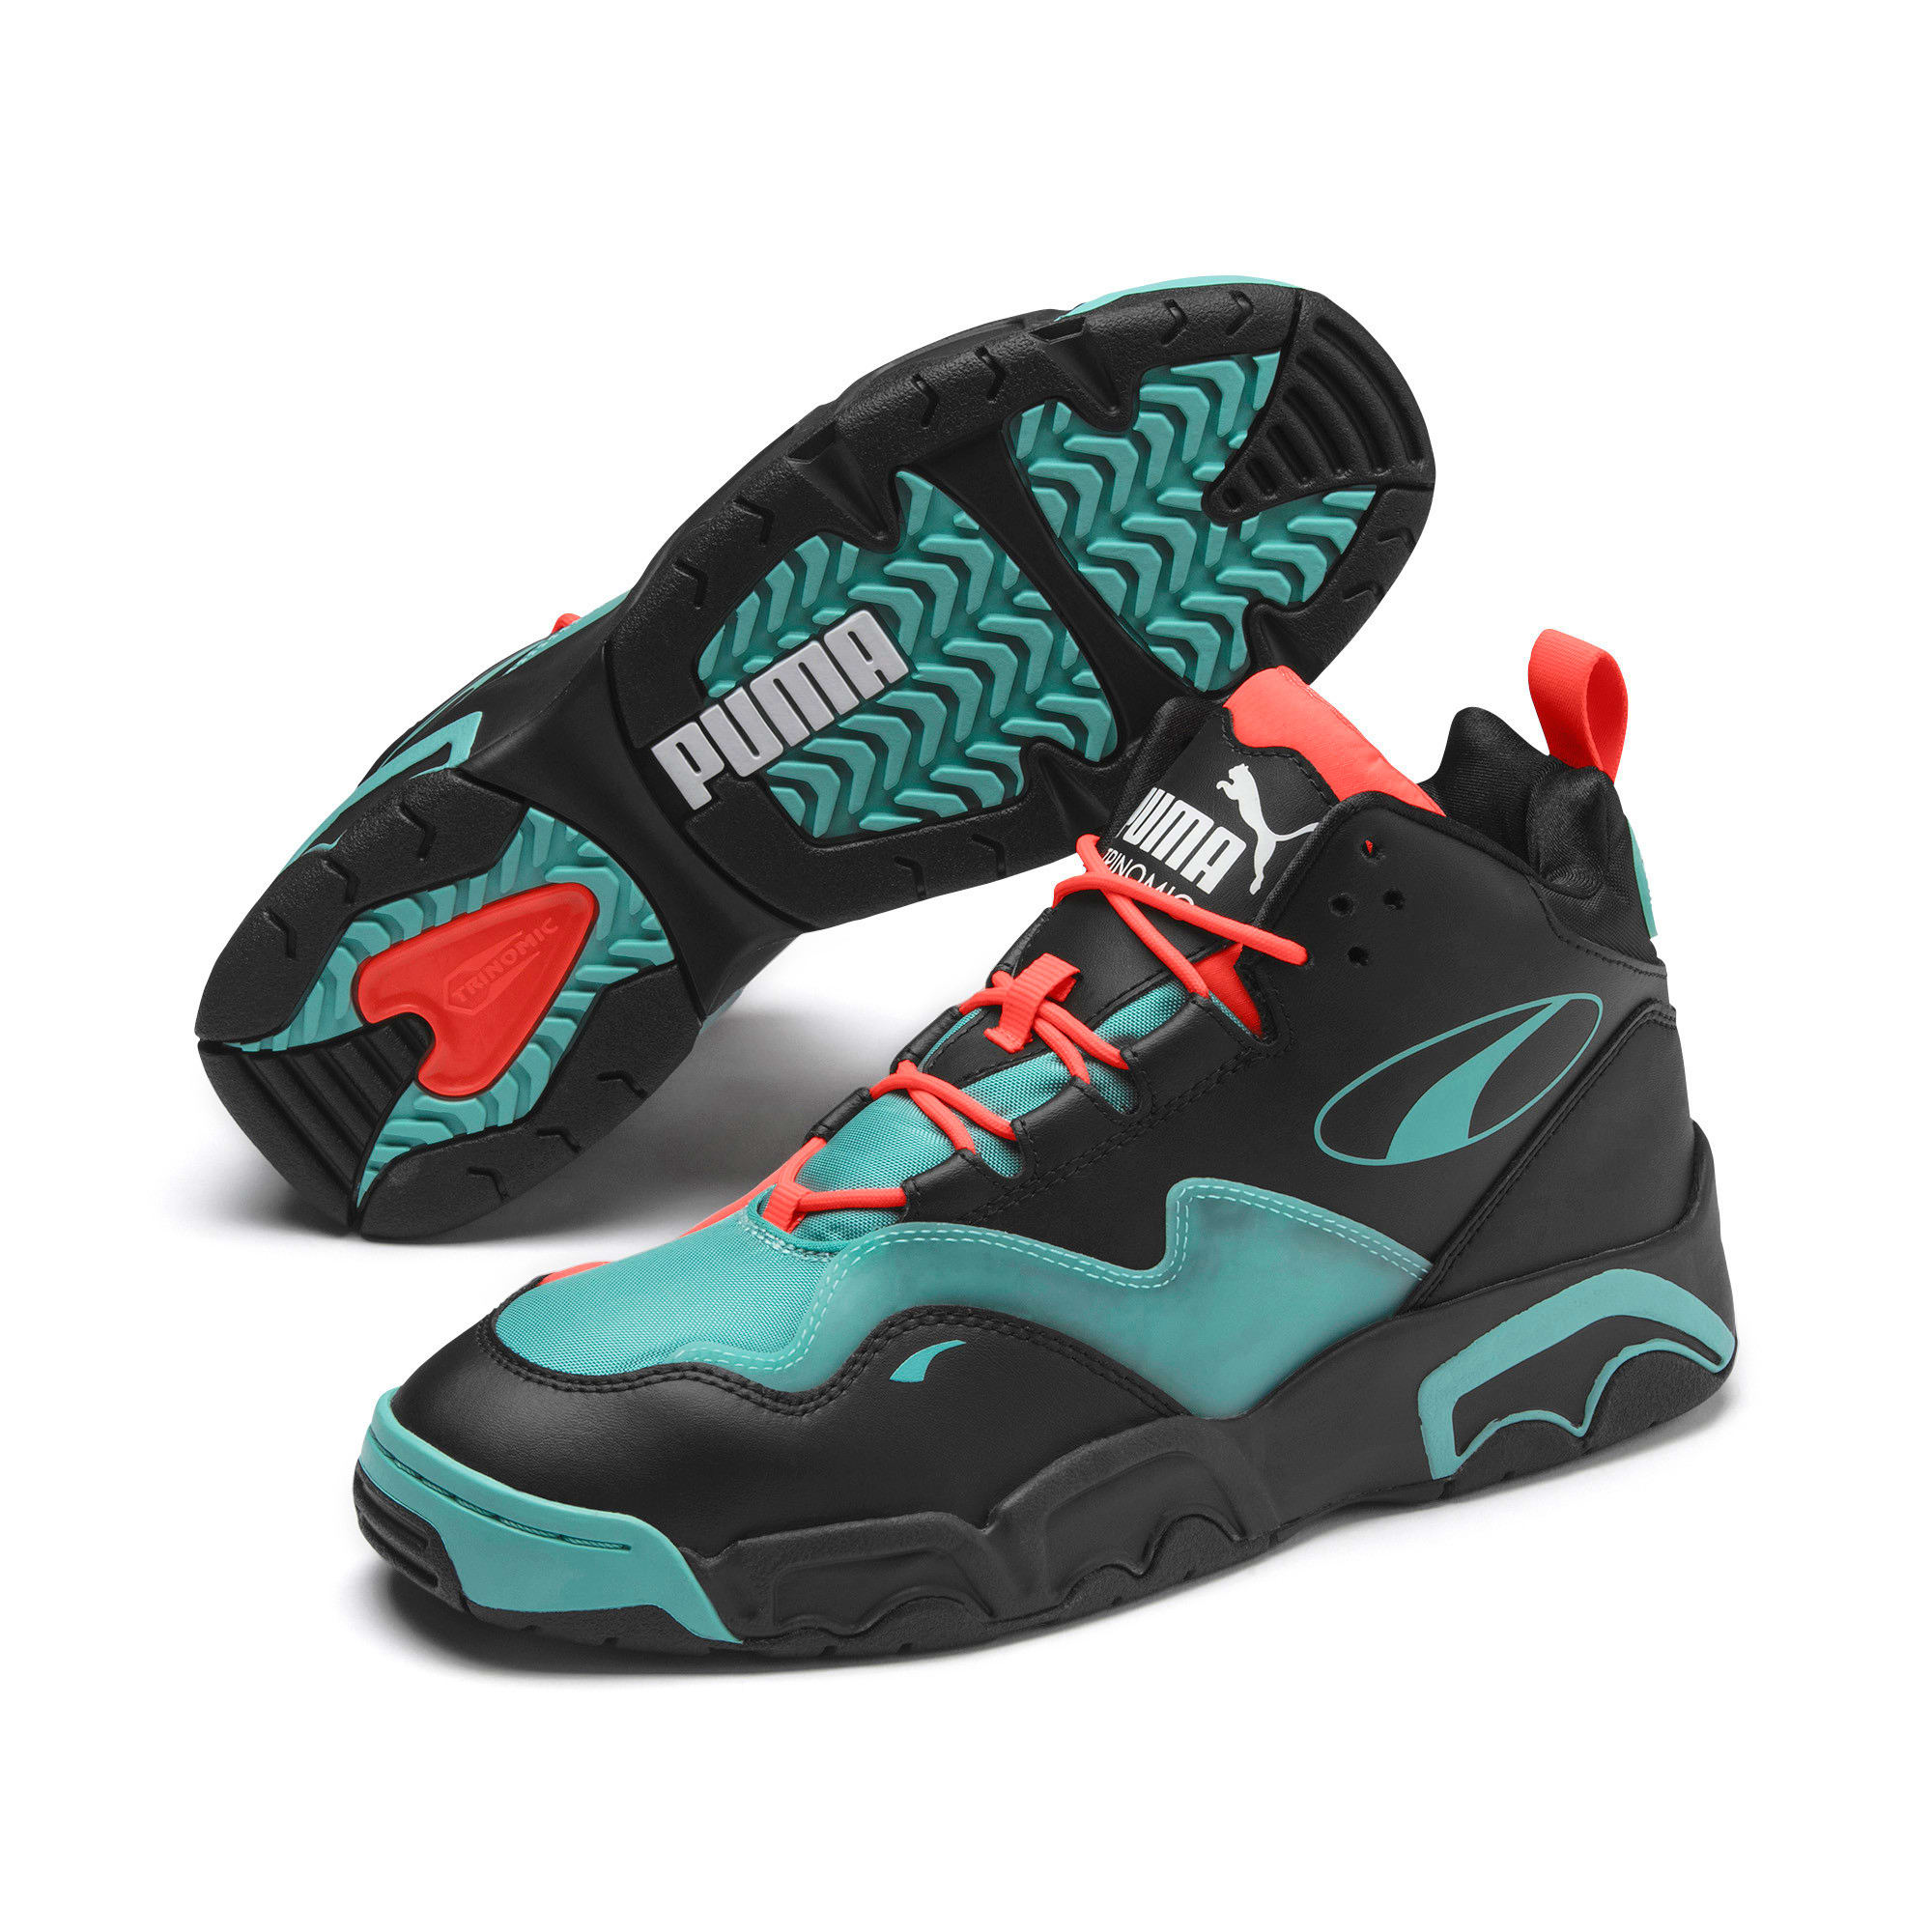 Thumbnail 4 of Source Mid Buzzer Trainers, P Blk-Nrgy Red-BlueTurquoise, medium-IND